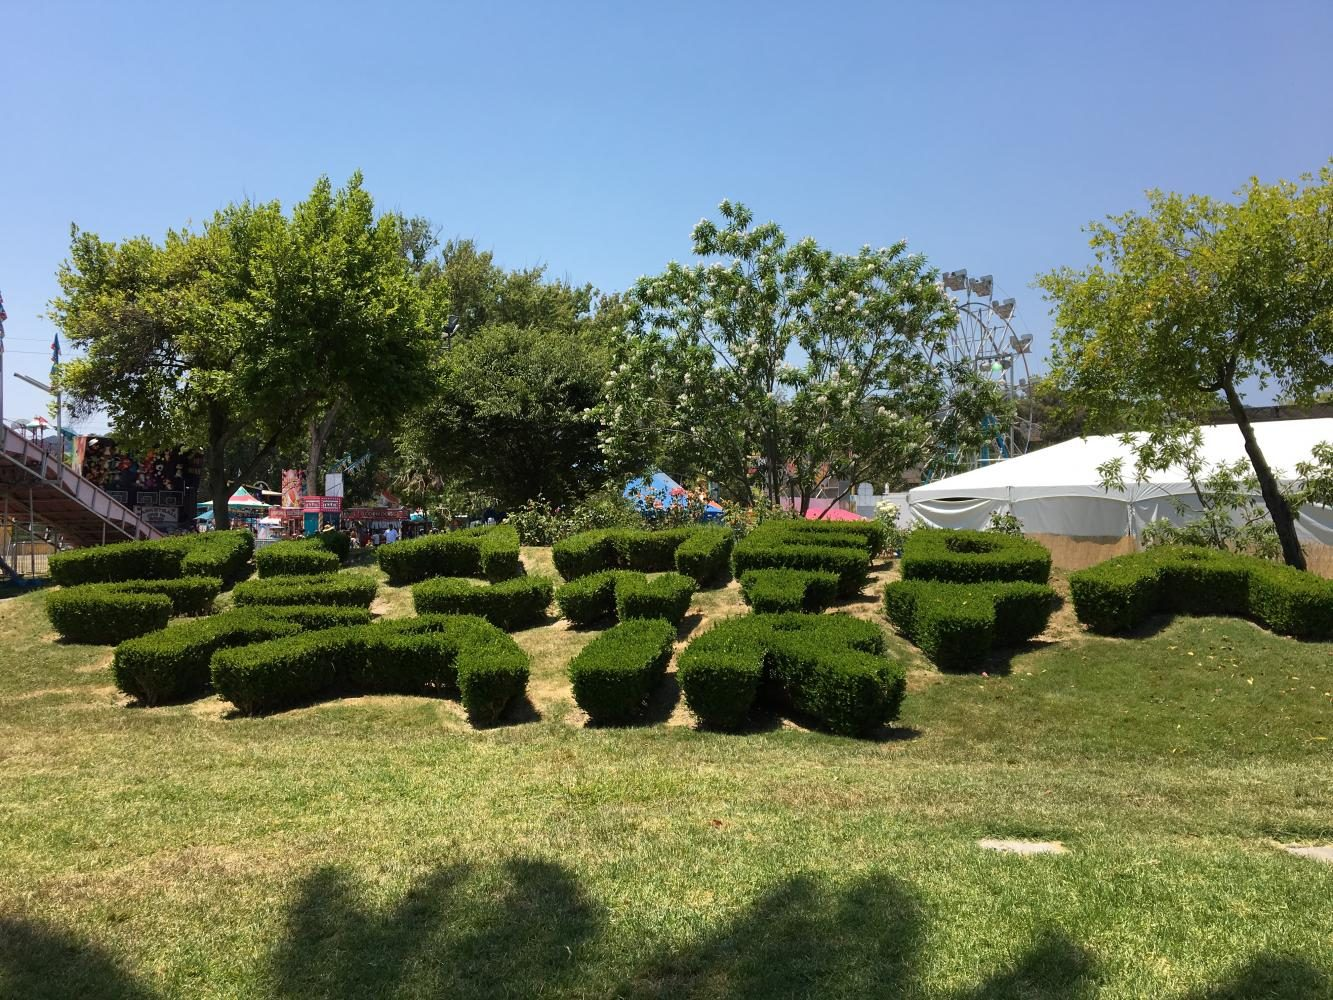 Hedge+cutouts+at+the+family-friendly%2C+fun+event+read+Alameda+County+Fair.+